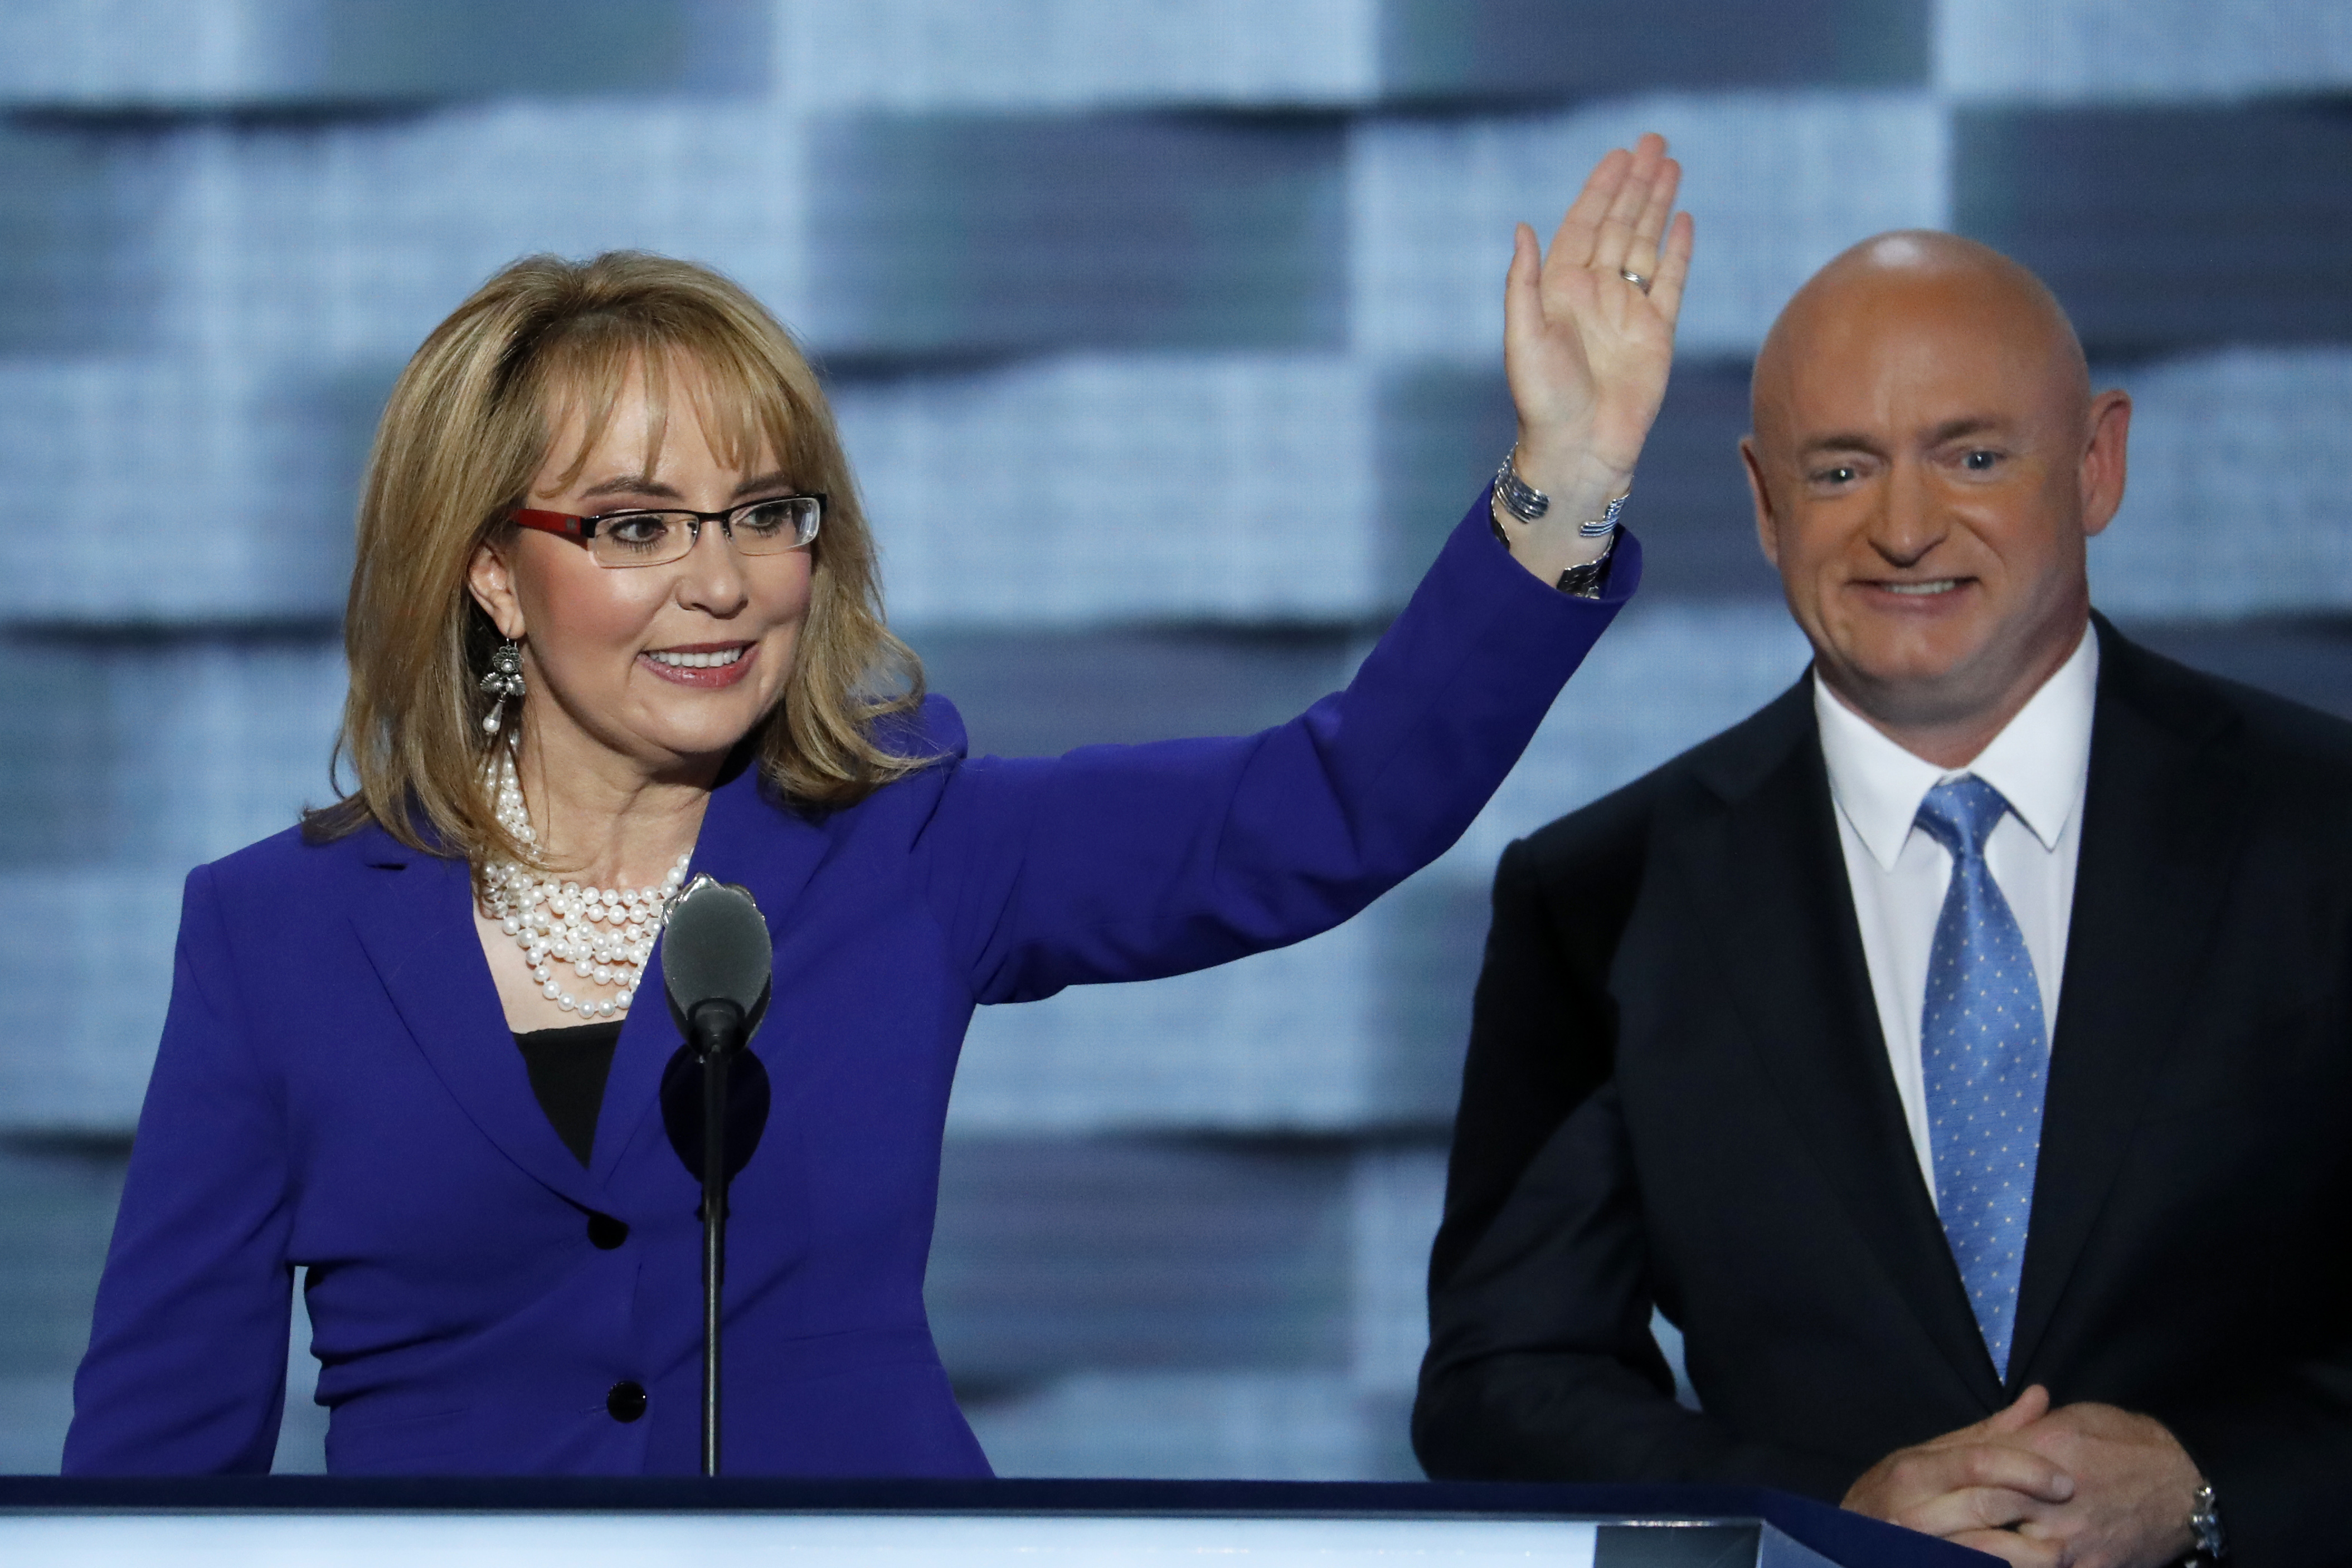 Former Rep. Gabby Giffords, D-Ariz., and her husband Astronaut Mark Kelly